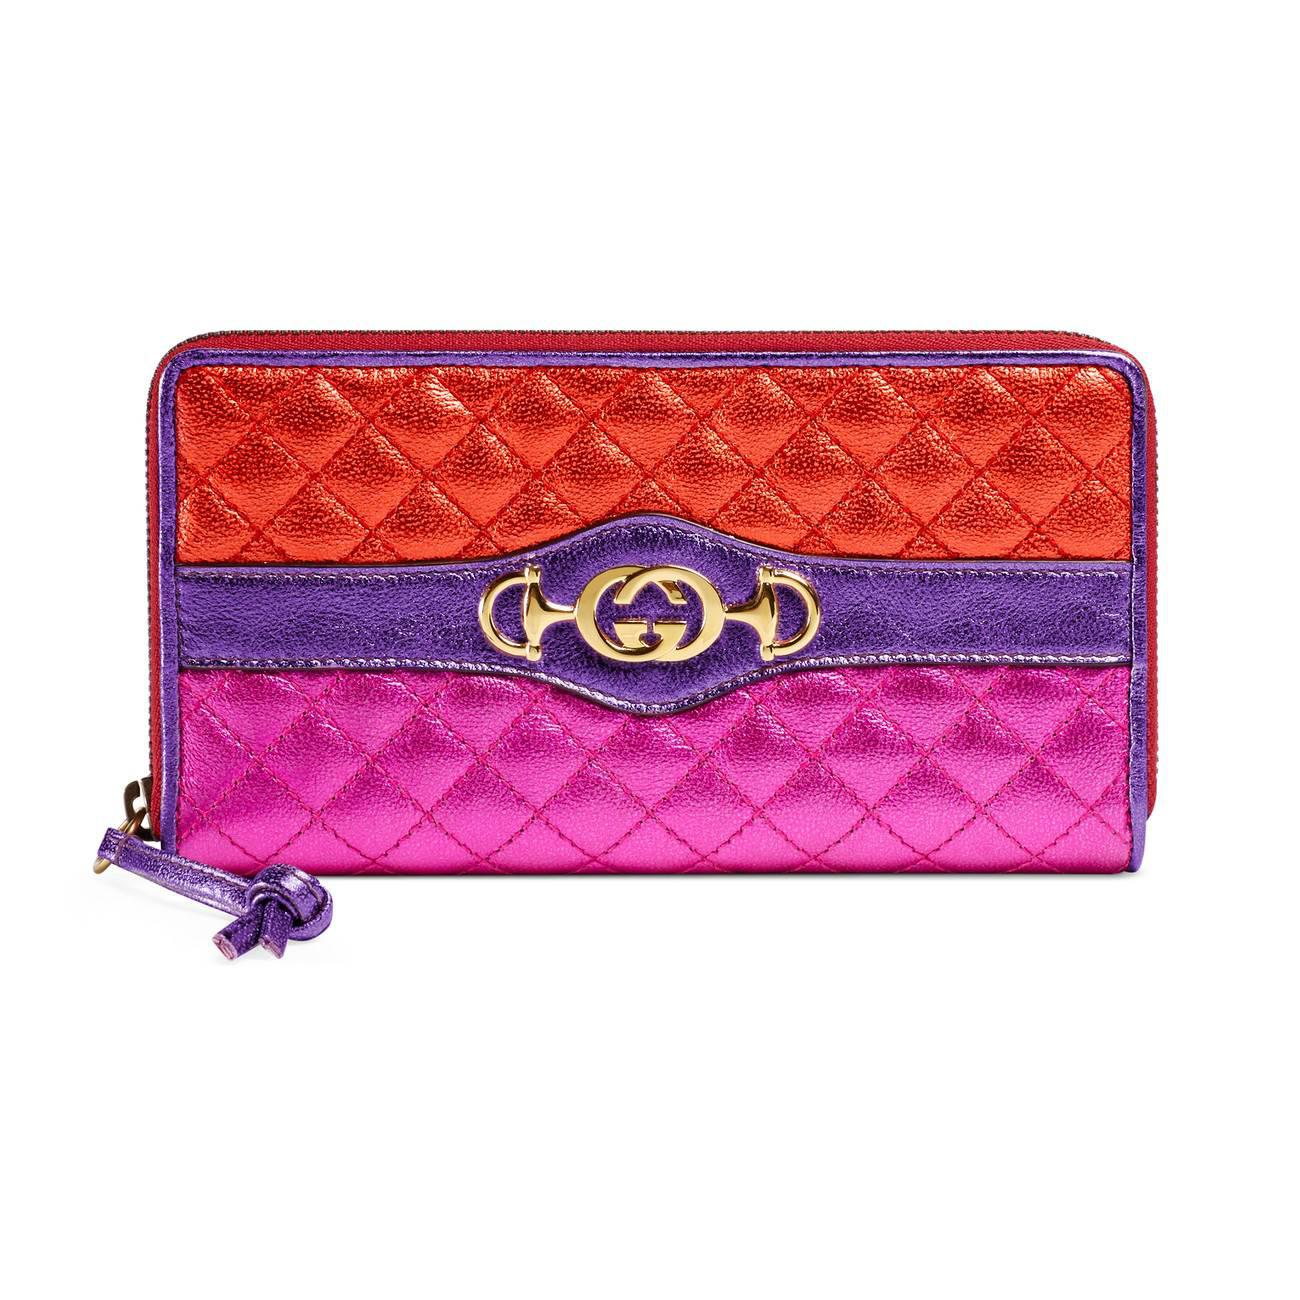 f0d7561c6b5adf Gucci Laminated Leather Zip Around Wallet in Purple - Lyst